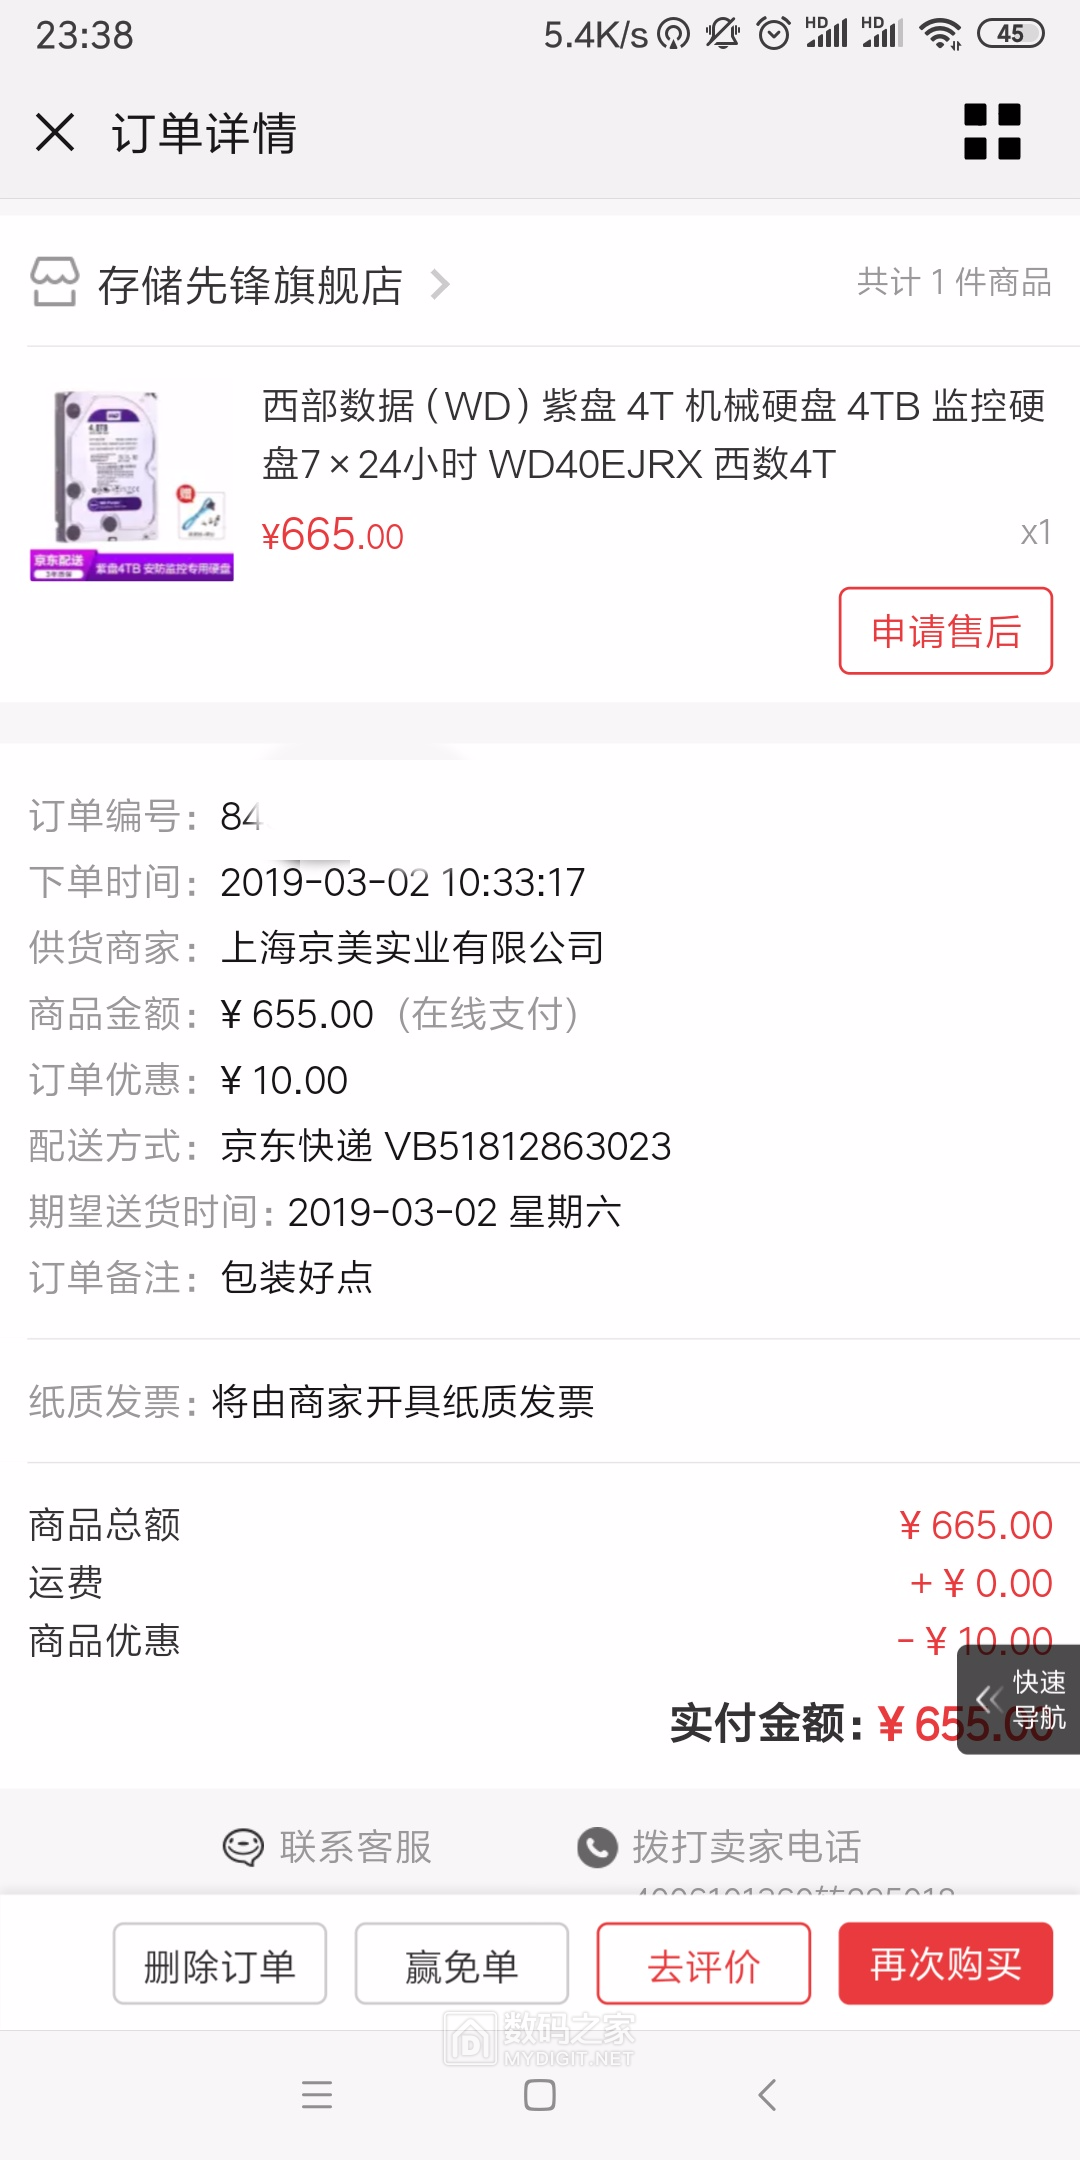 Screenshot_2019-03-16-23-38-06-191_com.tencent.mm.png